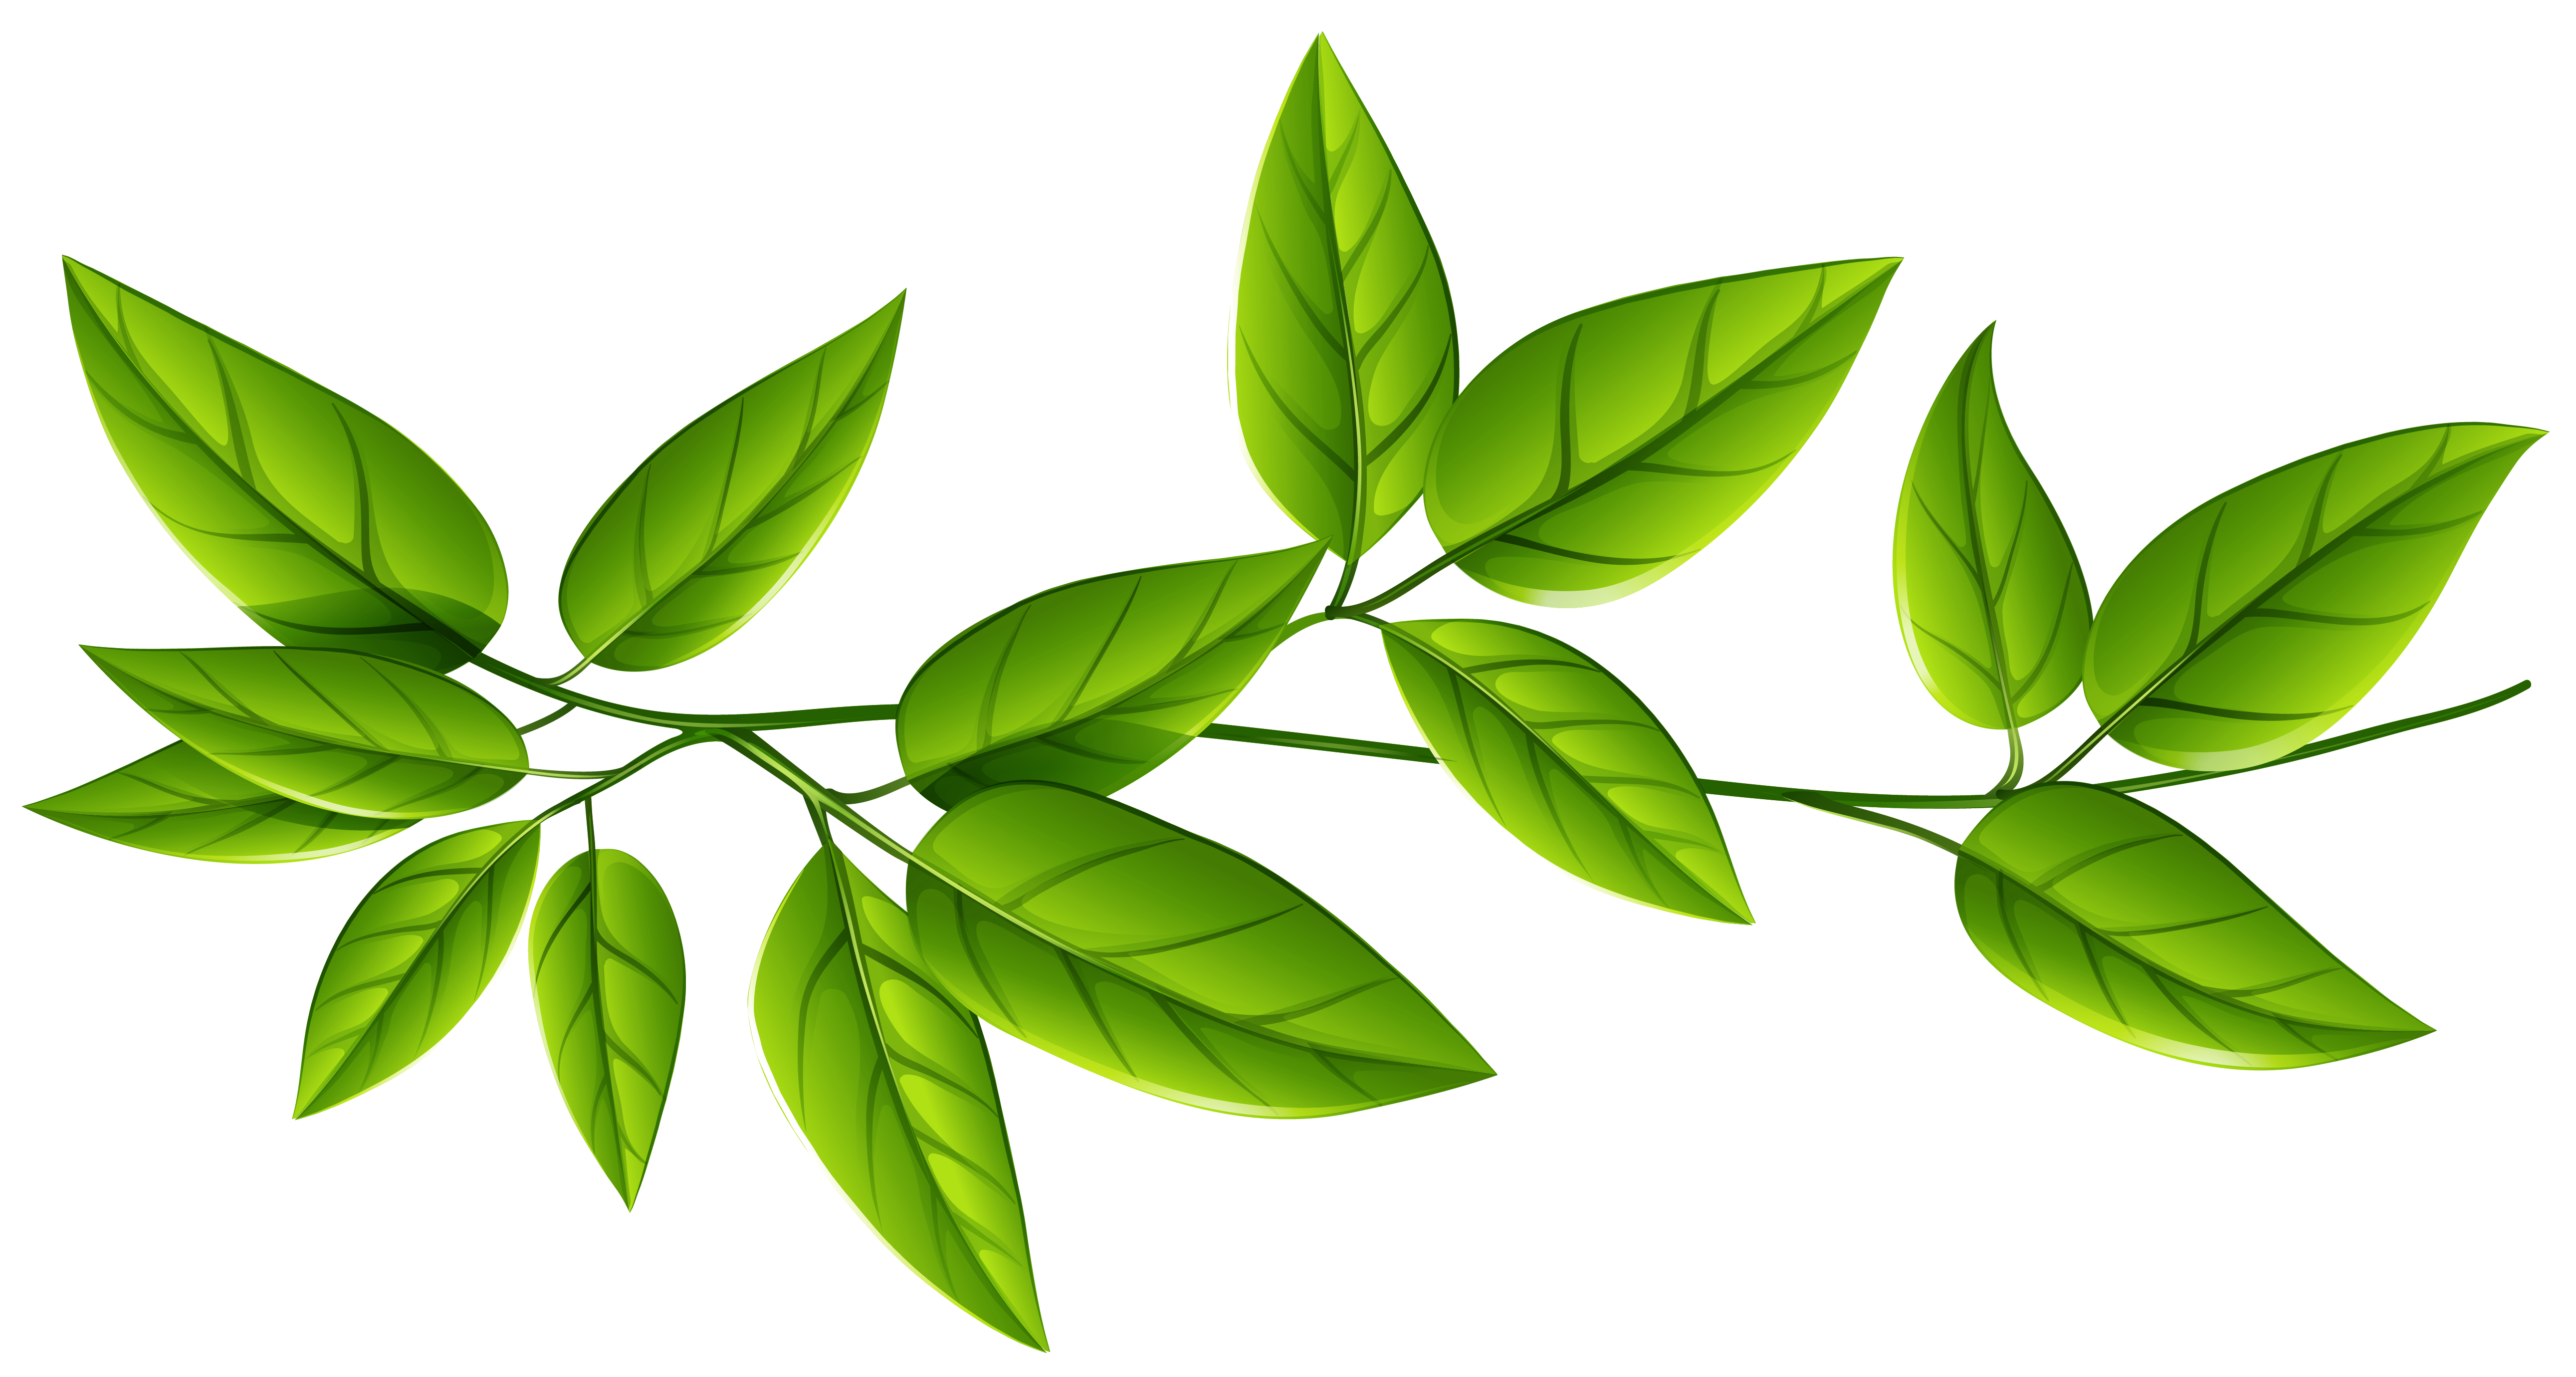 Green leaf png. Leaves image gallery yopriceville